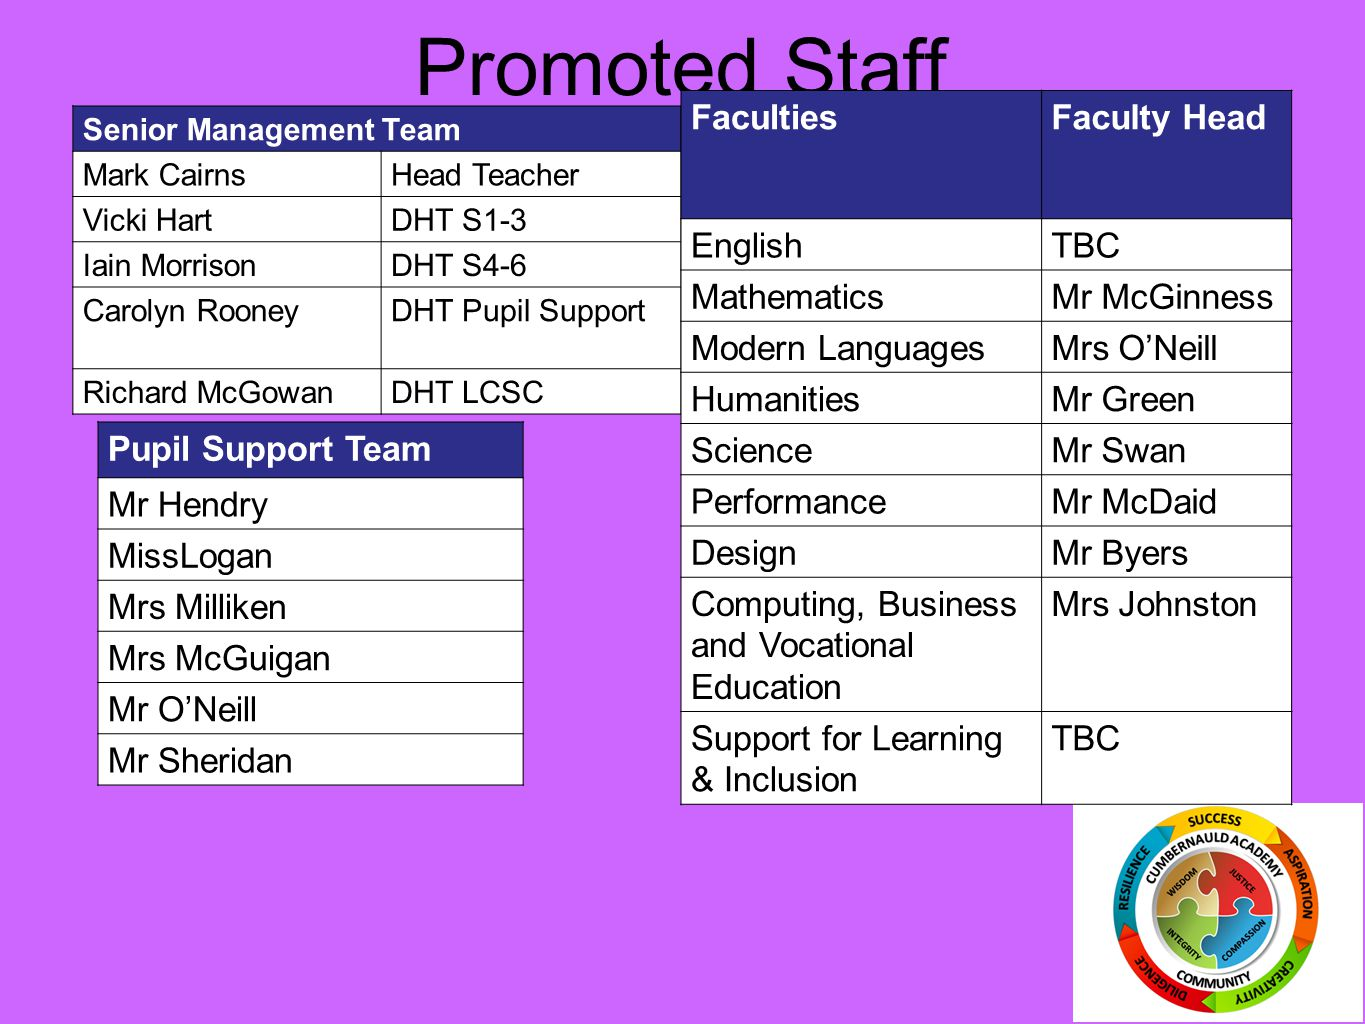 Promoted Staff Senior Management Team Mark CairnsHead Teacher Vicki HartDHT S1-3 Iain MorrisonDHT S4-6 Carolyn RooneyDHT Pupil Support Richard McGowanDHT LCSC Pupil Support Team Mr Hendry MissLogan Mrs Milliken Mrs McGuigan Mr O'Neill Mr Sheridan FacultiesFaculty Head EnglishTBC MathematicsMr McGinness Modern LanguagesMrs O'Neill HumanitiesMr Green ScienceMr Swan PerformanceMr McDaid DesignMr Byers Computing, Business and Vocational Education Mrs Johnston Support for Learning & Inclusion TBC